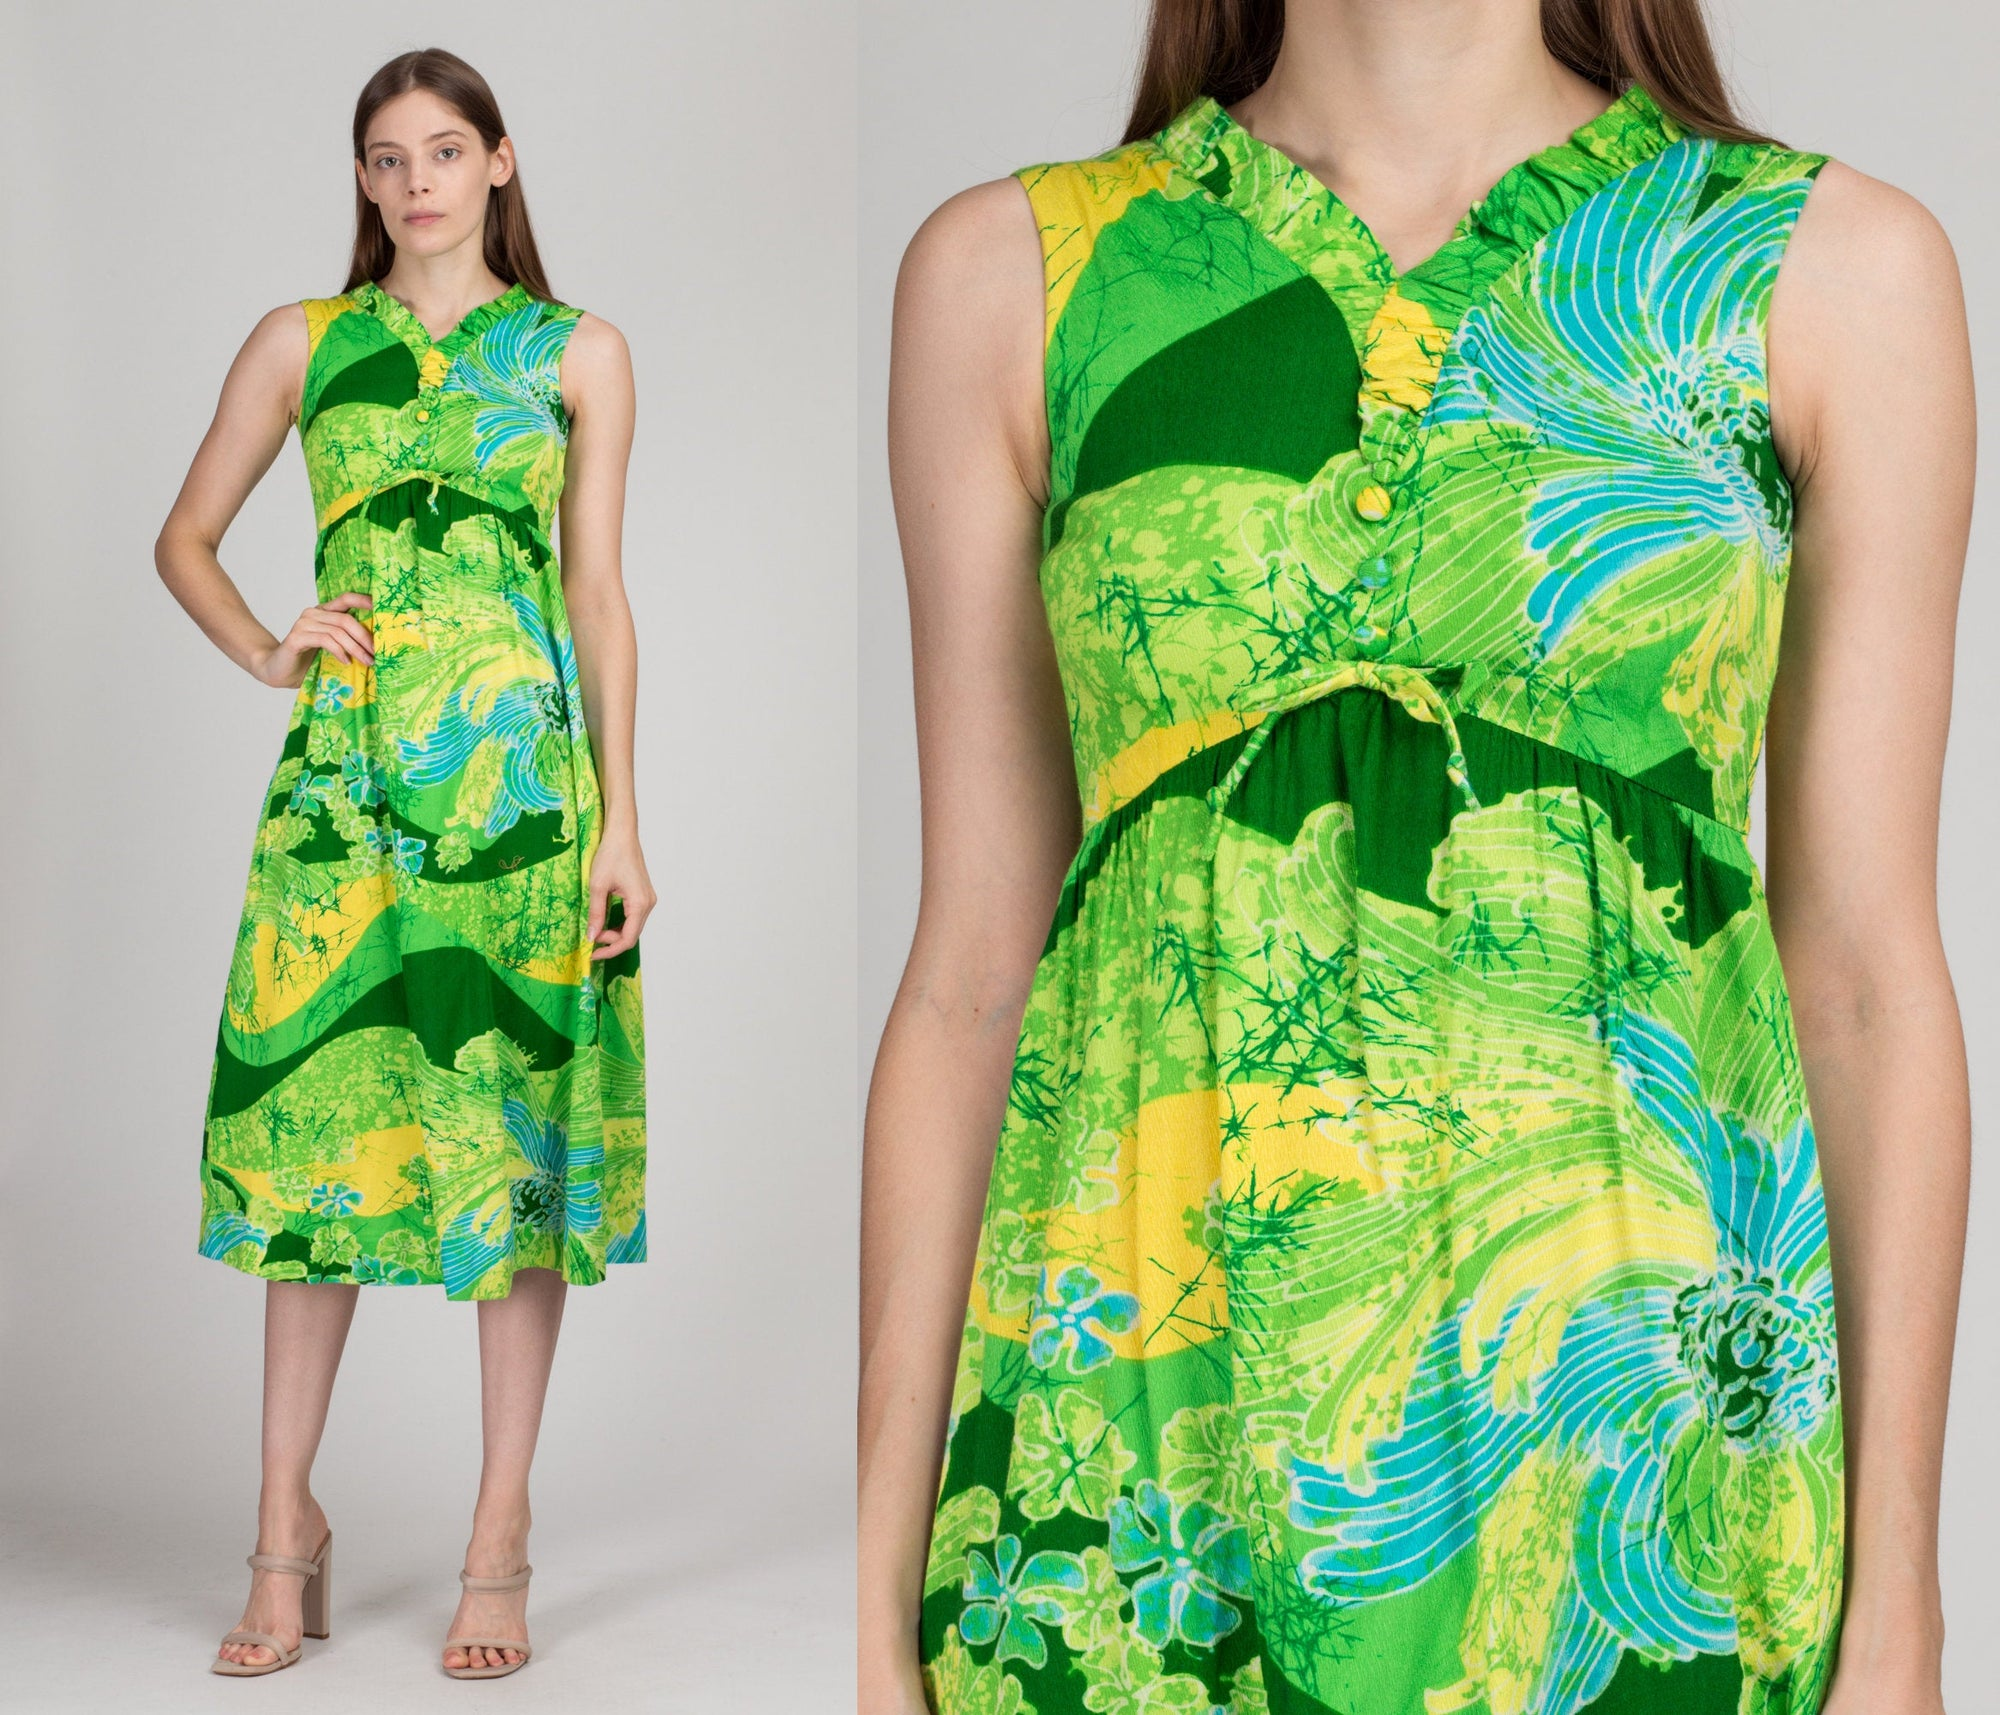 60s Lilia Honolulu Hawaiian Maxi Dress - Girl's Large | Vintage Bright Green Barkcloth Boho Column Sundress